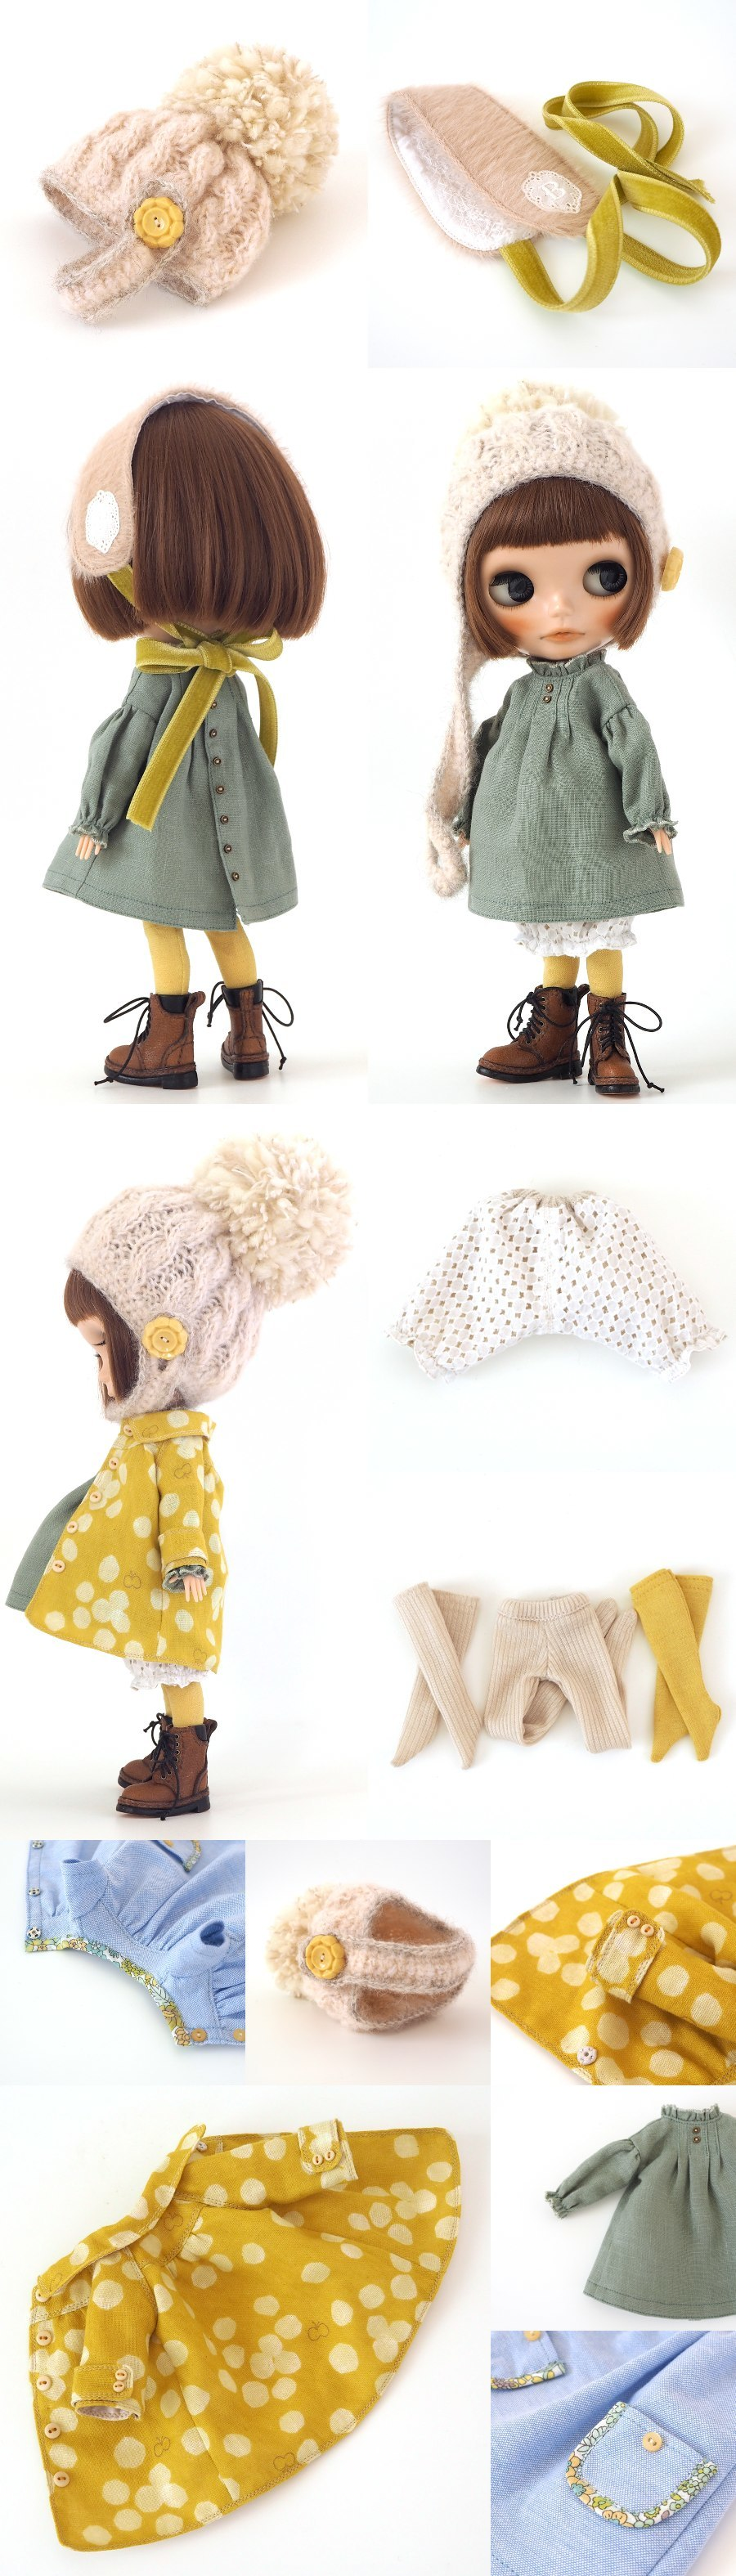 ** Blythe outfit ** Lucalily 526**_d0217189_11351426.jpg